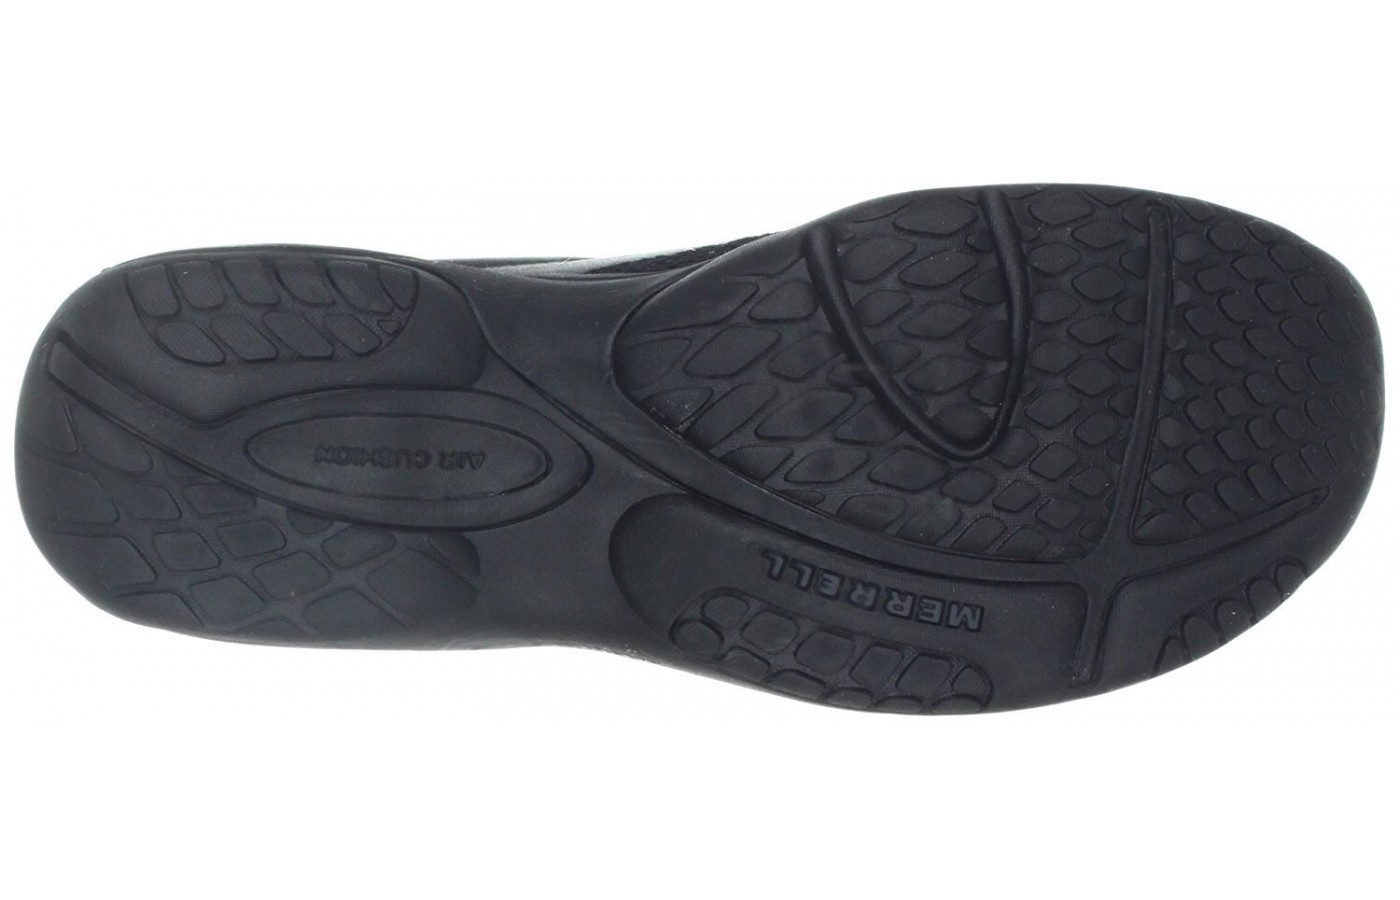 The Merrell Encore Bypass features an M Select Grip outsole